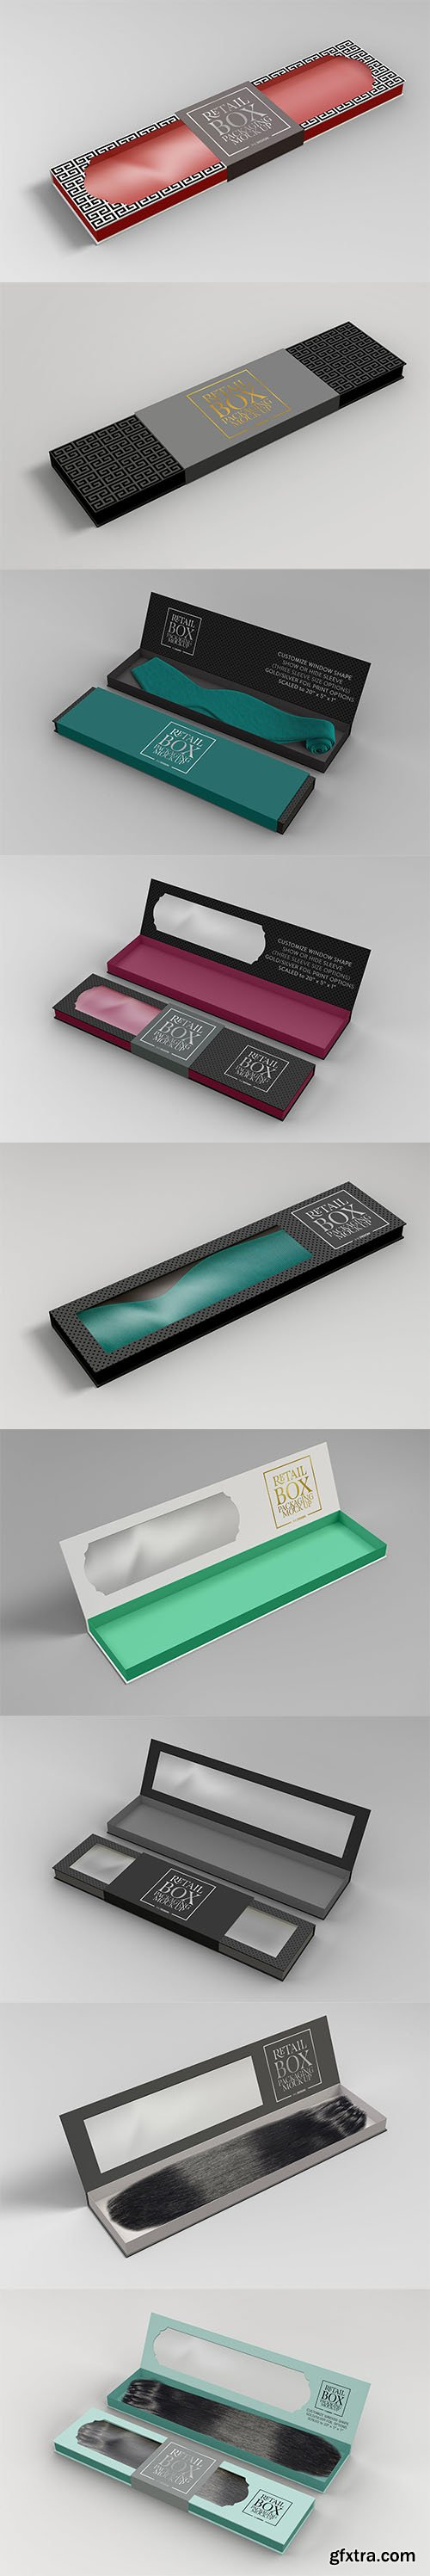 Rectangle Collapsible Box Packaging Mockup